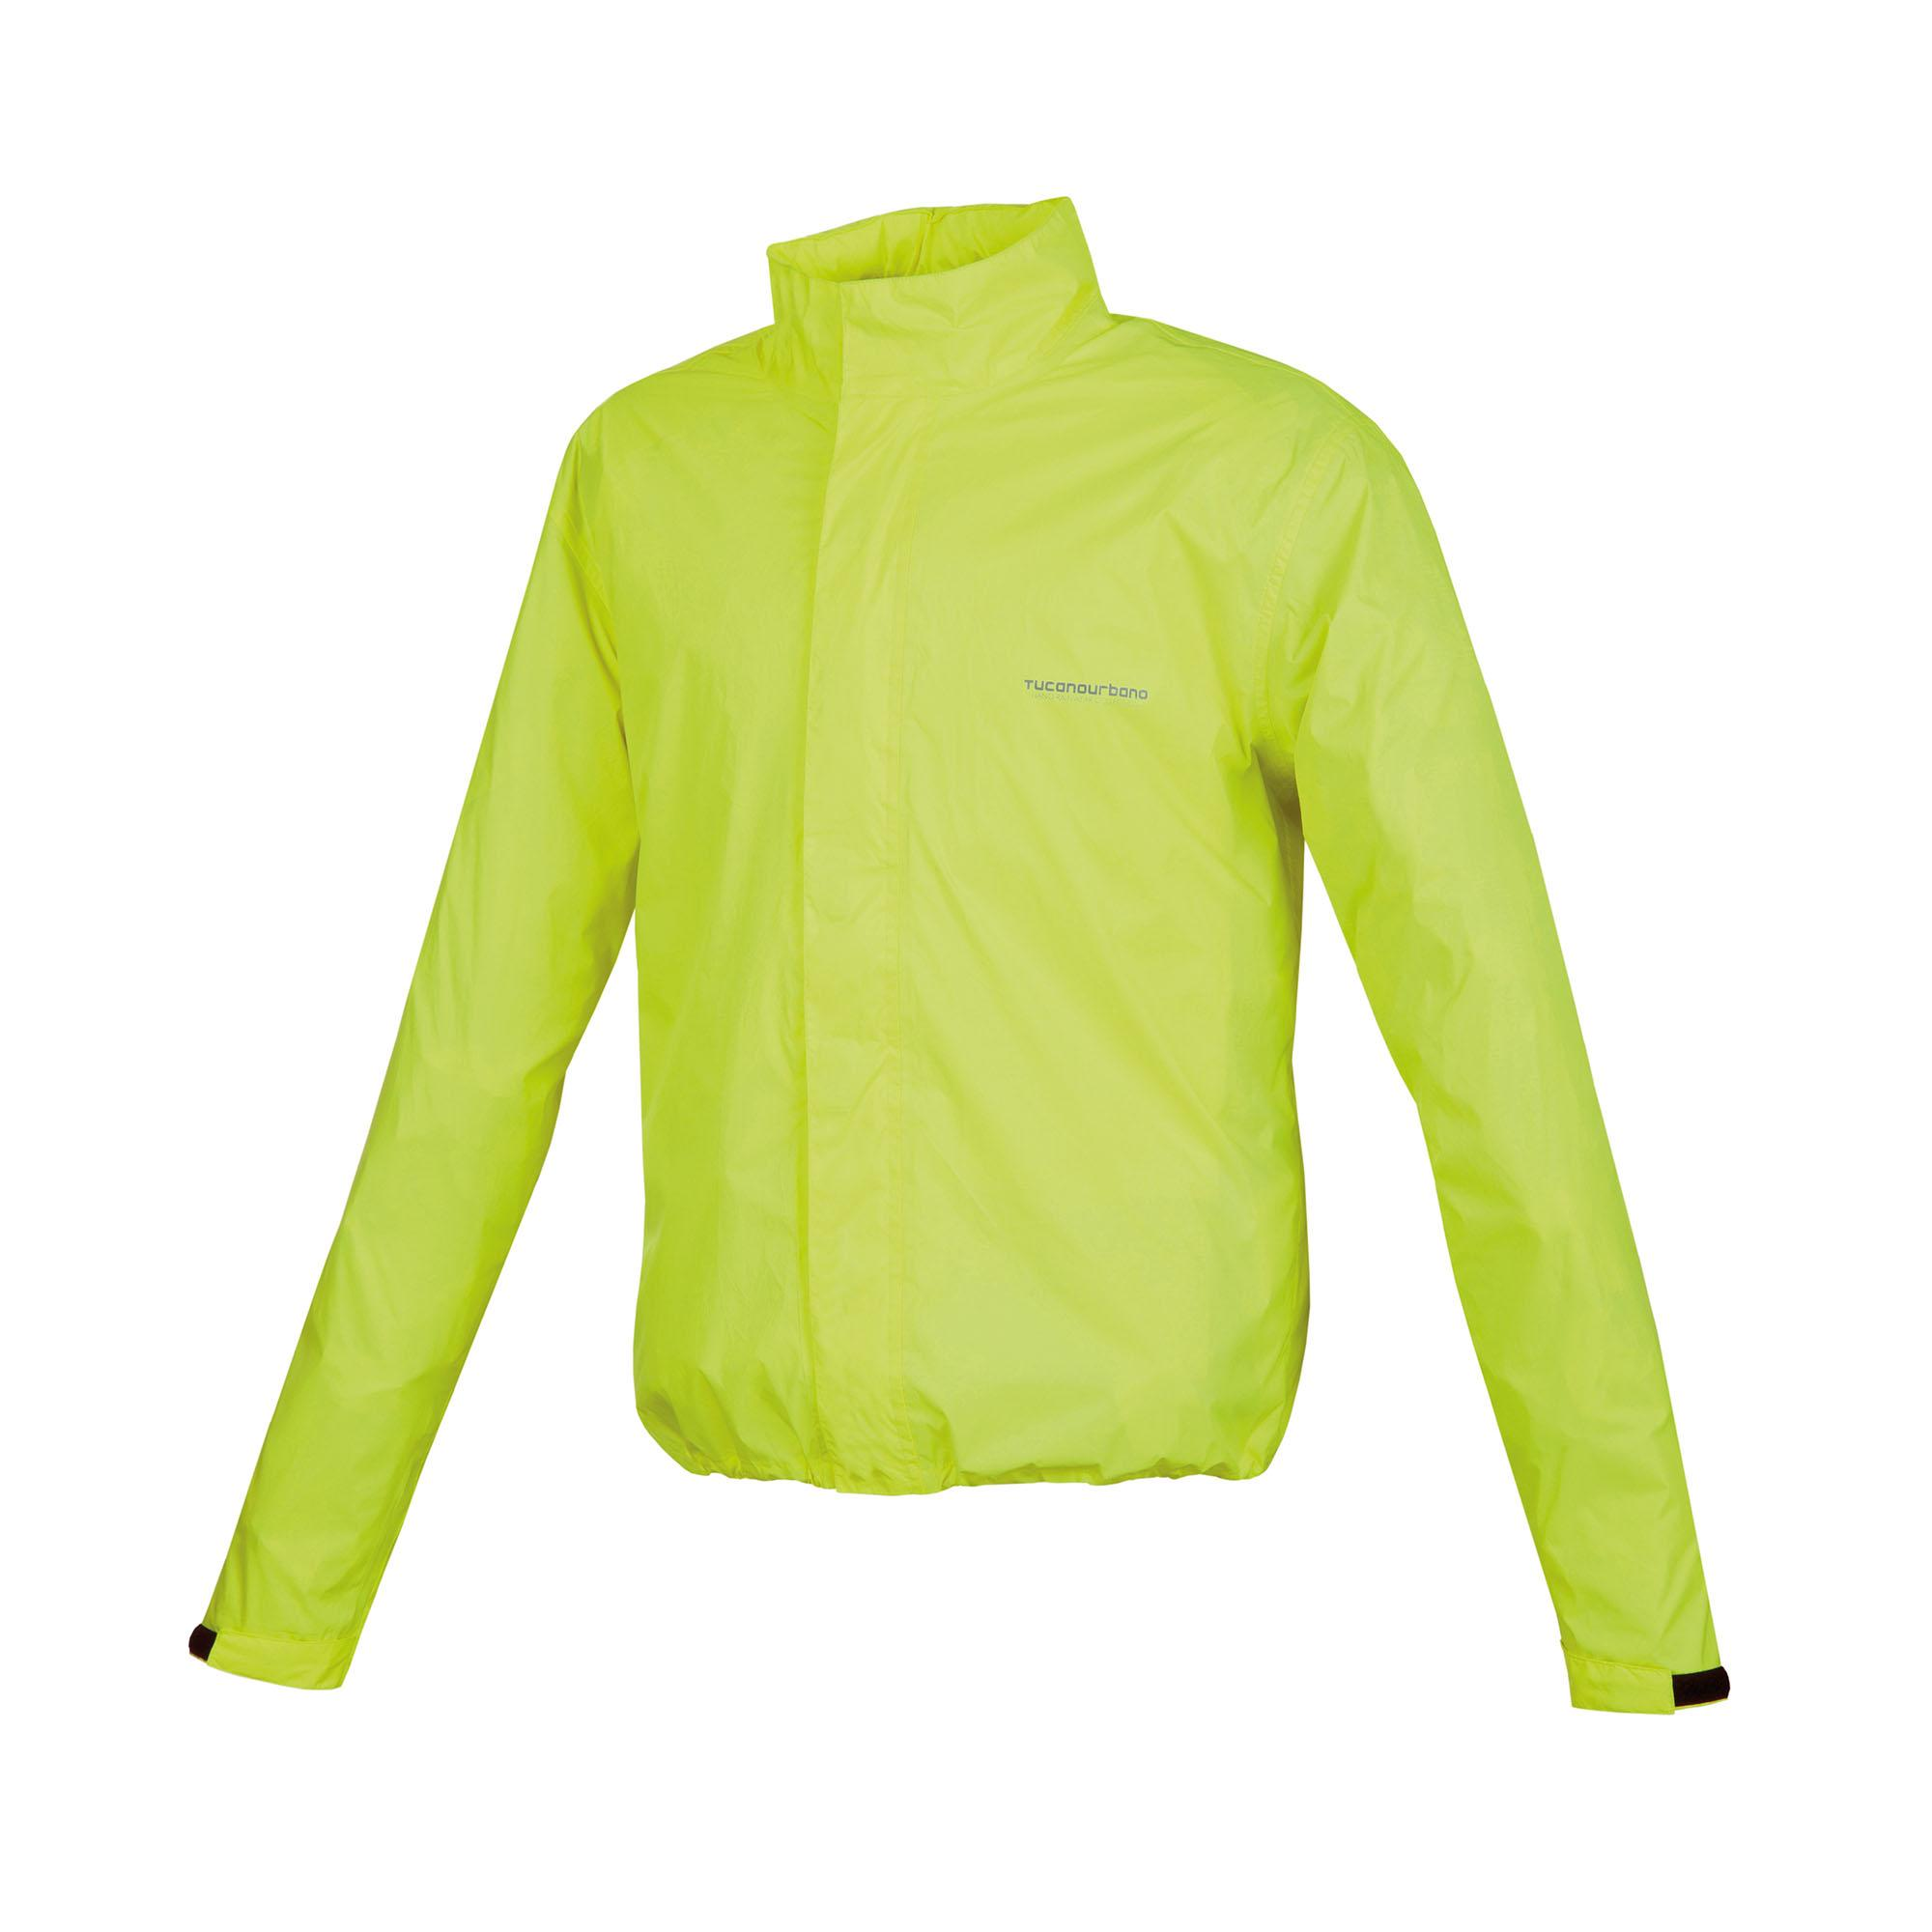 Super-compact Raincoat Nano Rain Jacket Plus Fluorescent Yellow